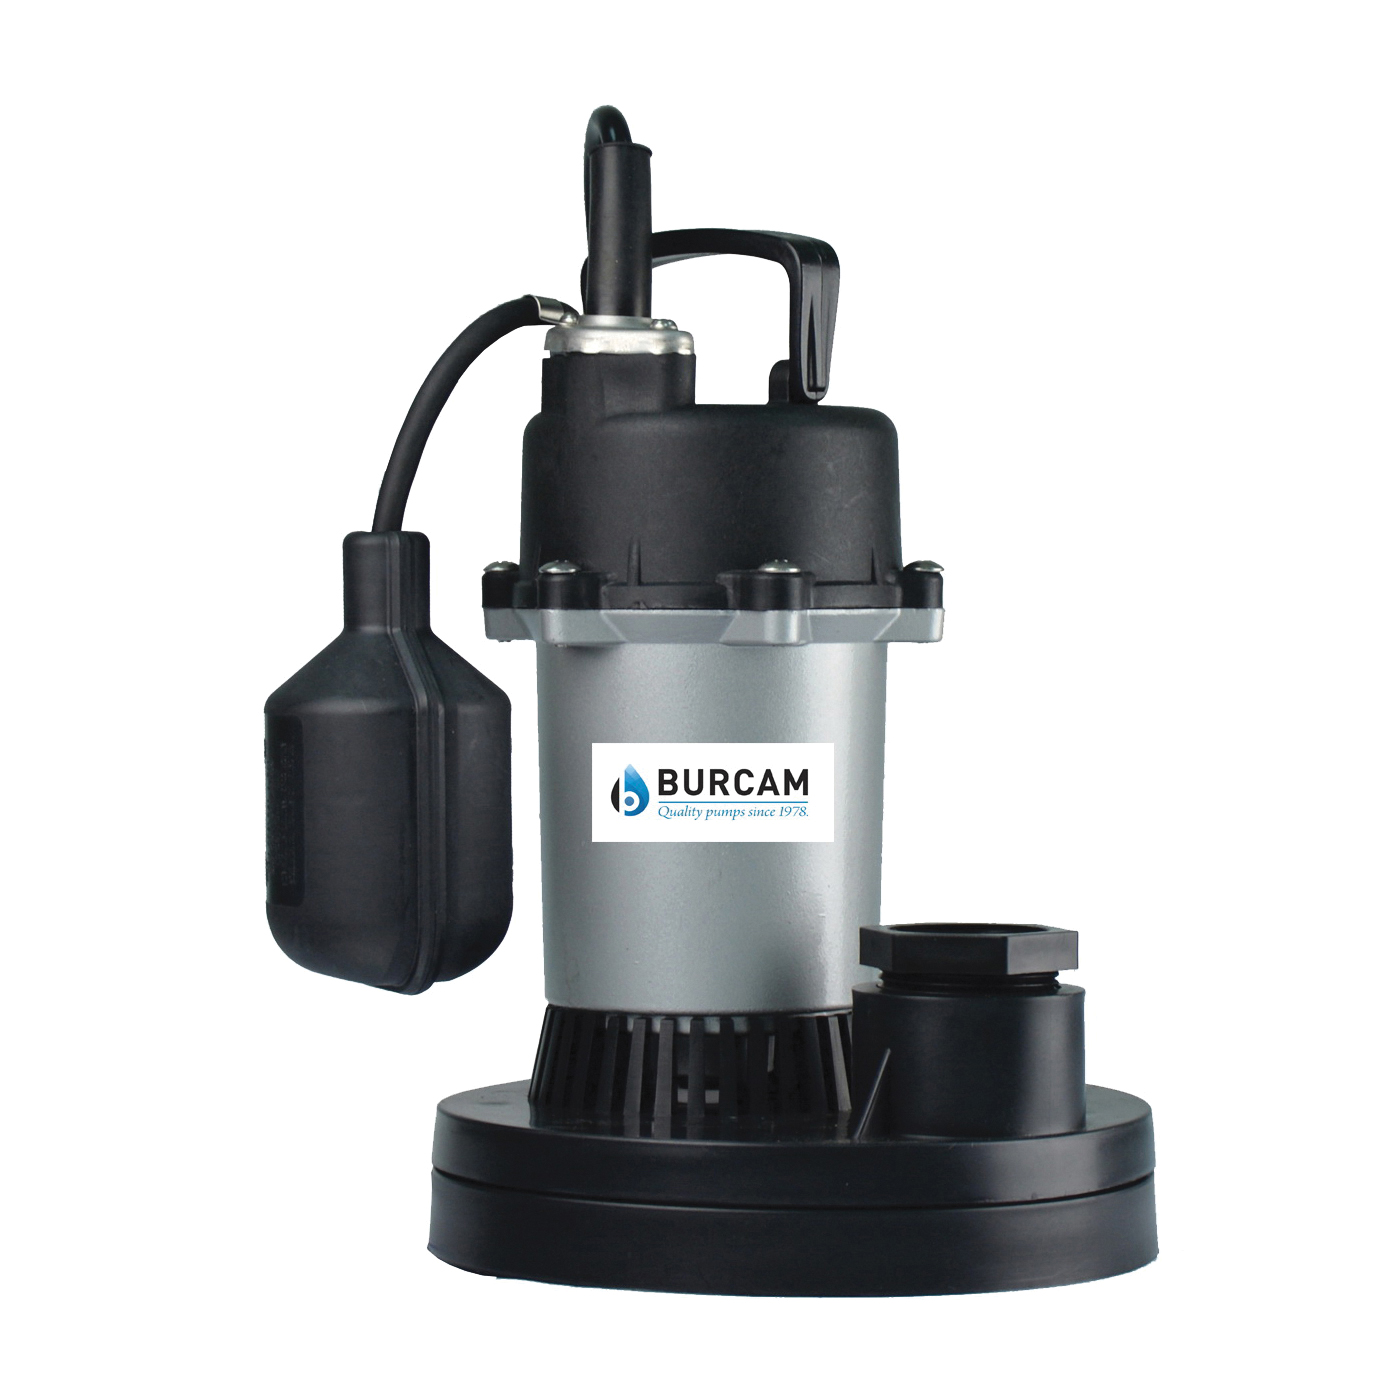 Picture of Burcam 300500Z Sump Pump, 4 A, 115 V, 0.33 hp, 1-1/2 in Outlet, 18 ft Max Head, 1450 gph, Noryl